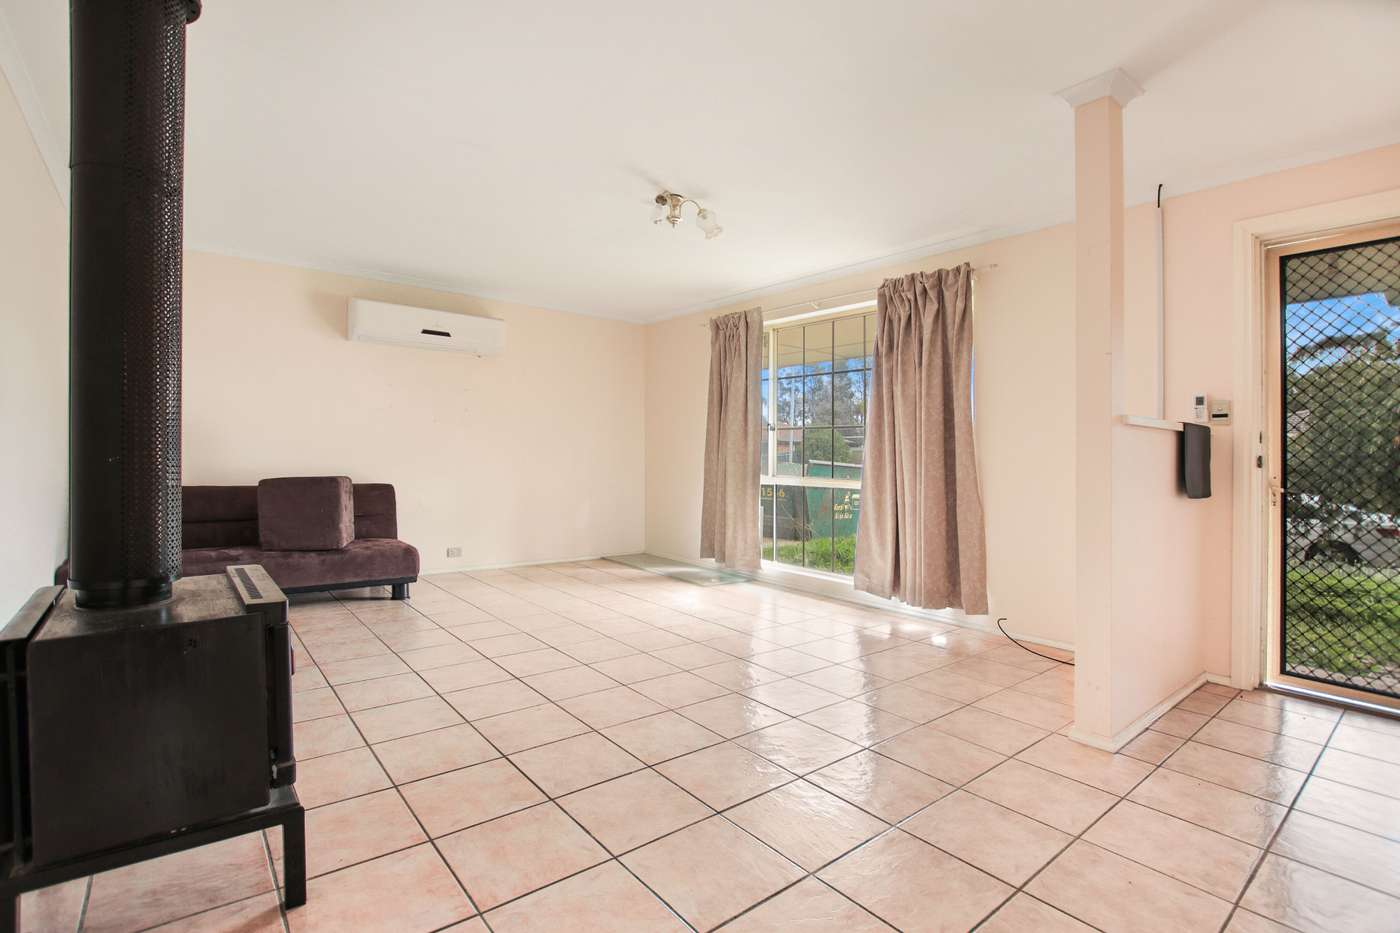 Main view of Homely house listing, 17 Bolivia Crescent, Paralowie, SA 5108